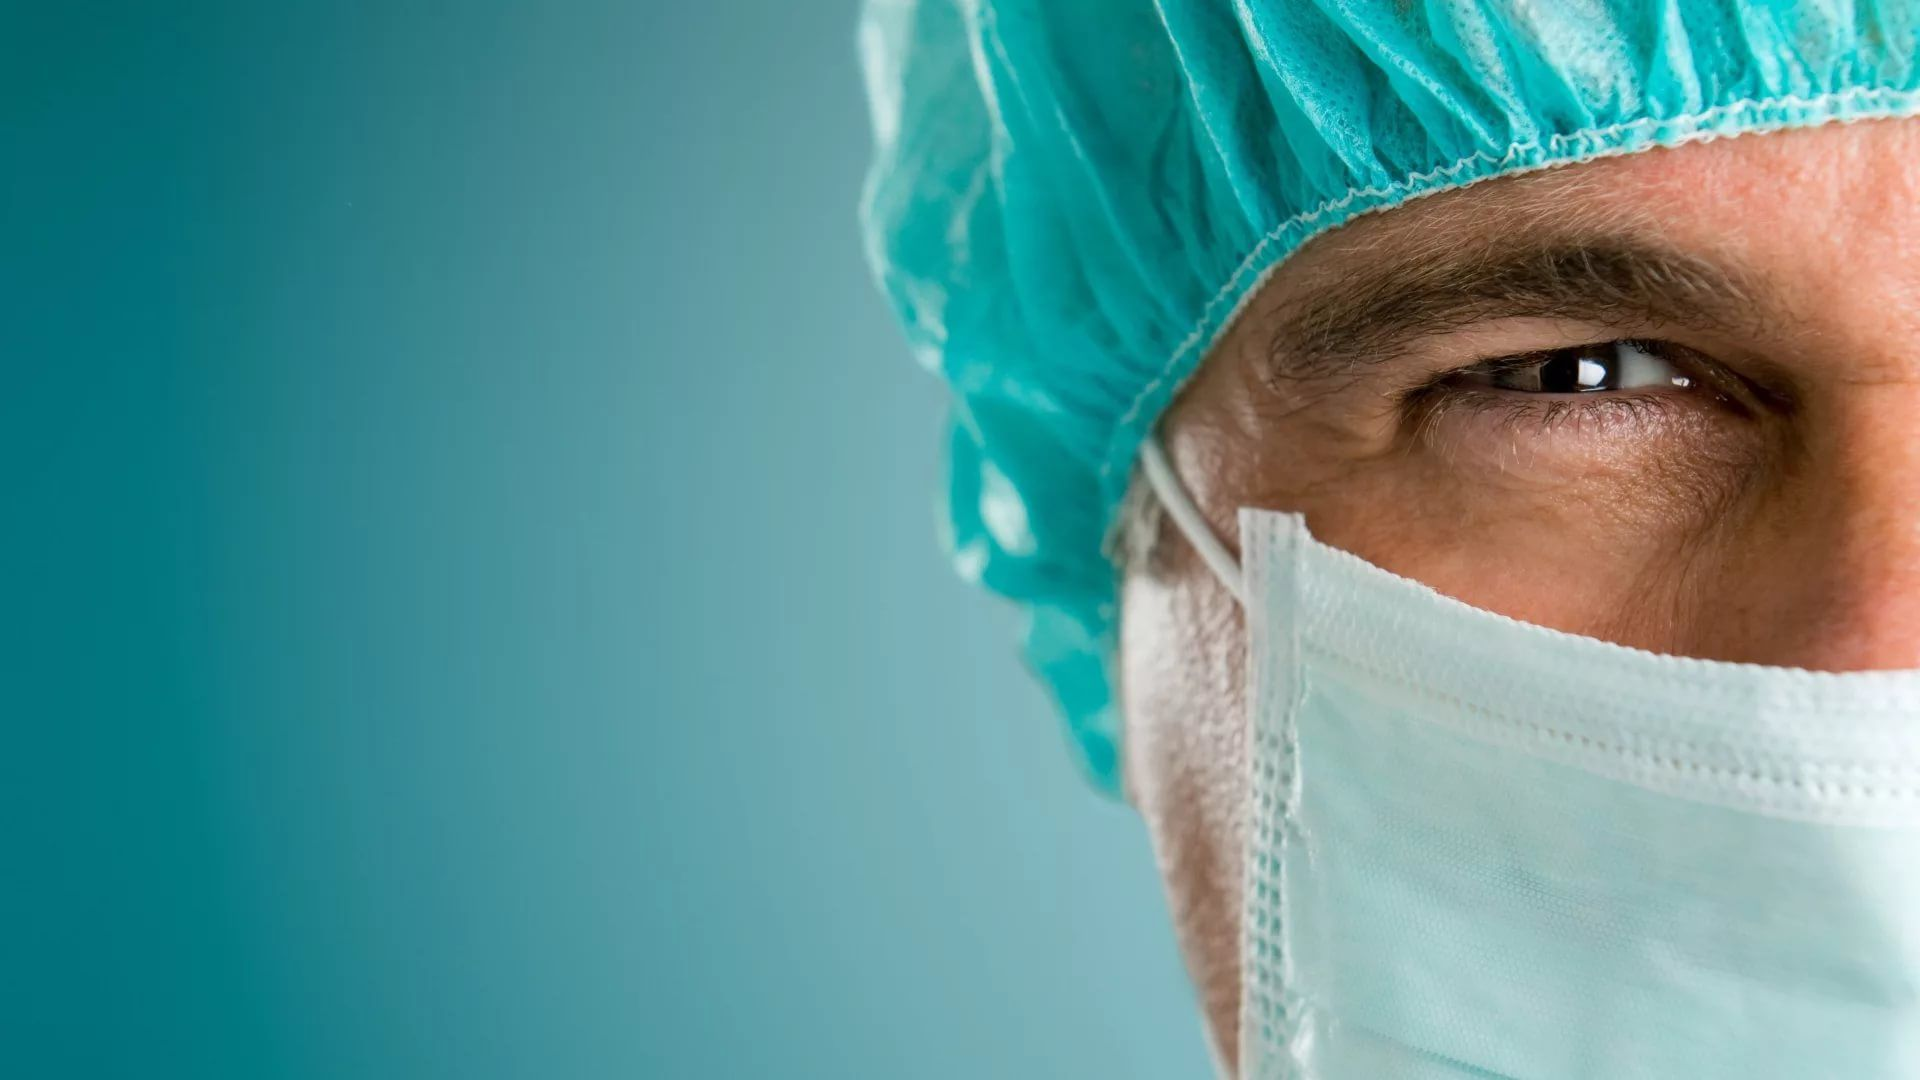 Medical download free wallpaper image search